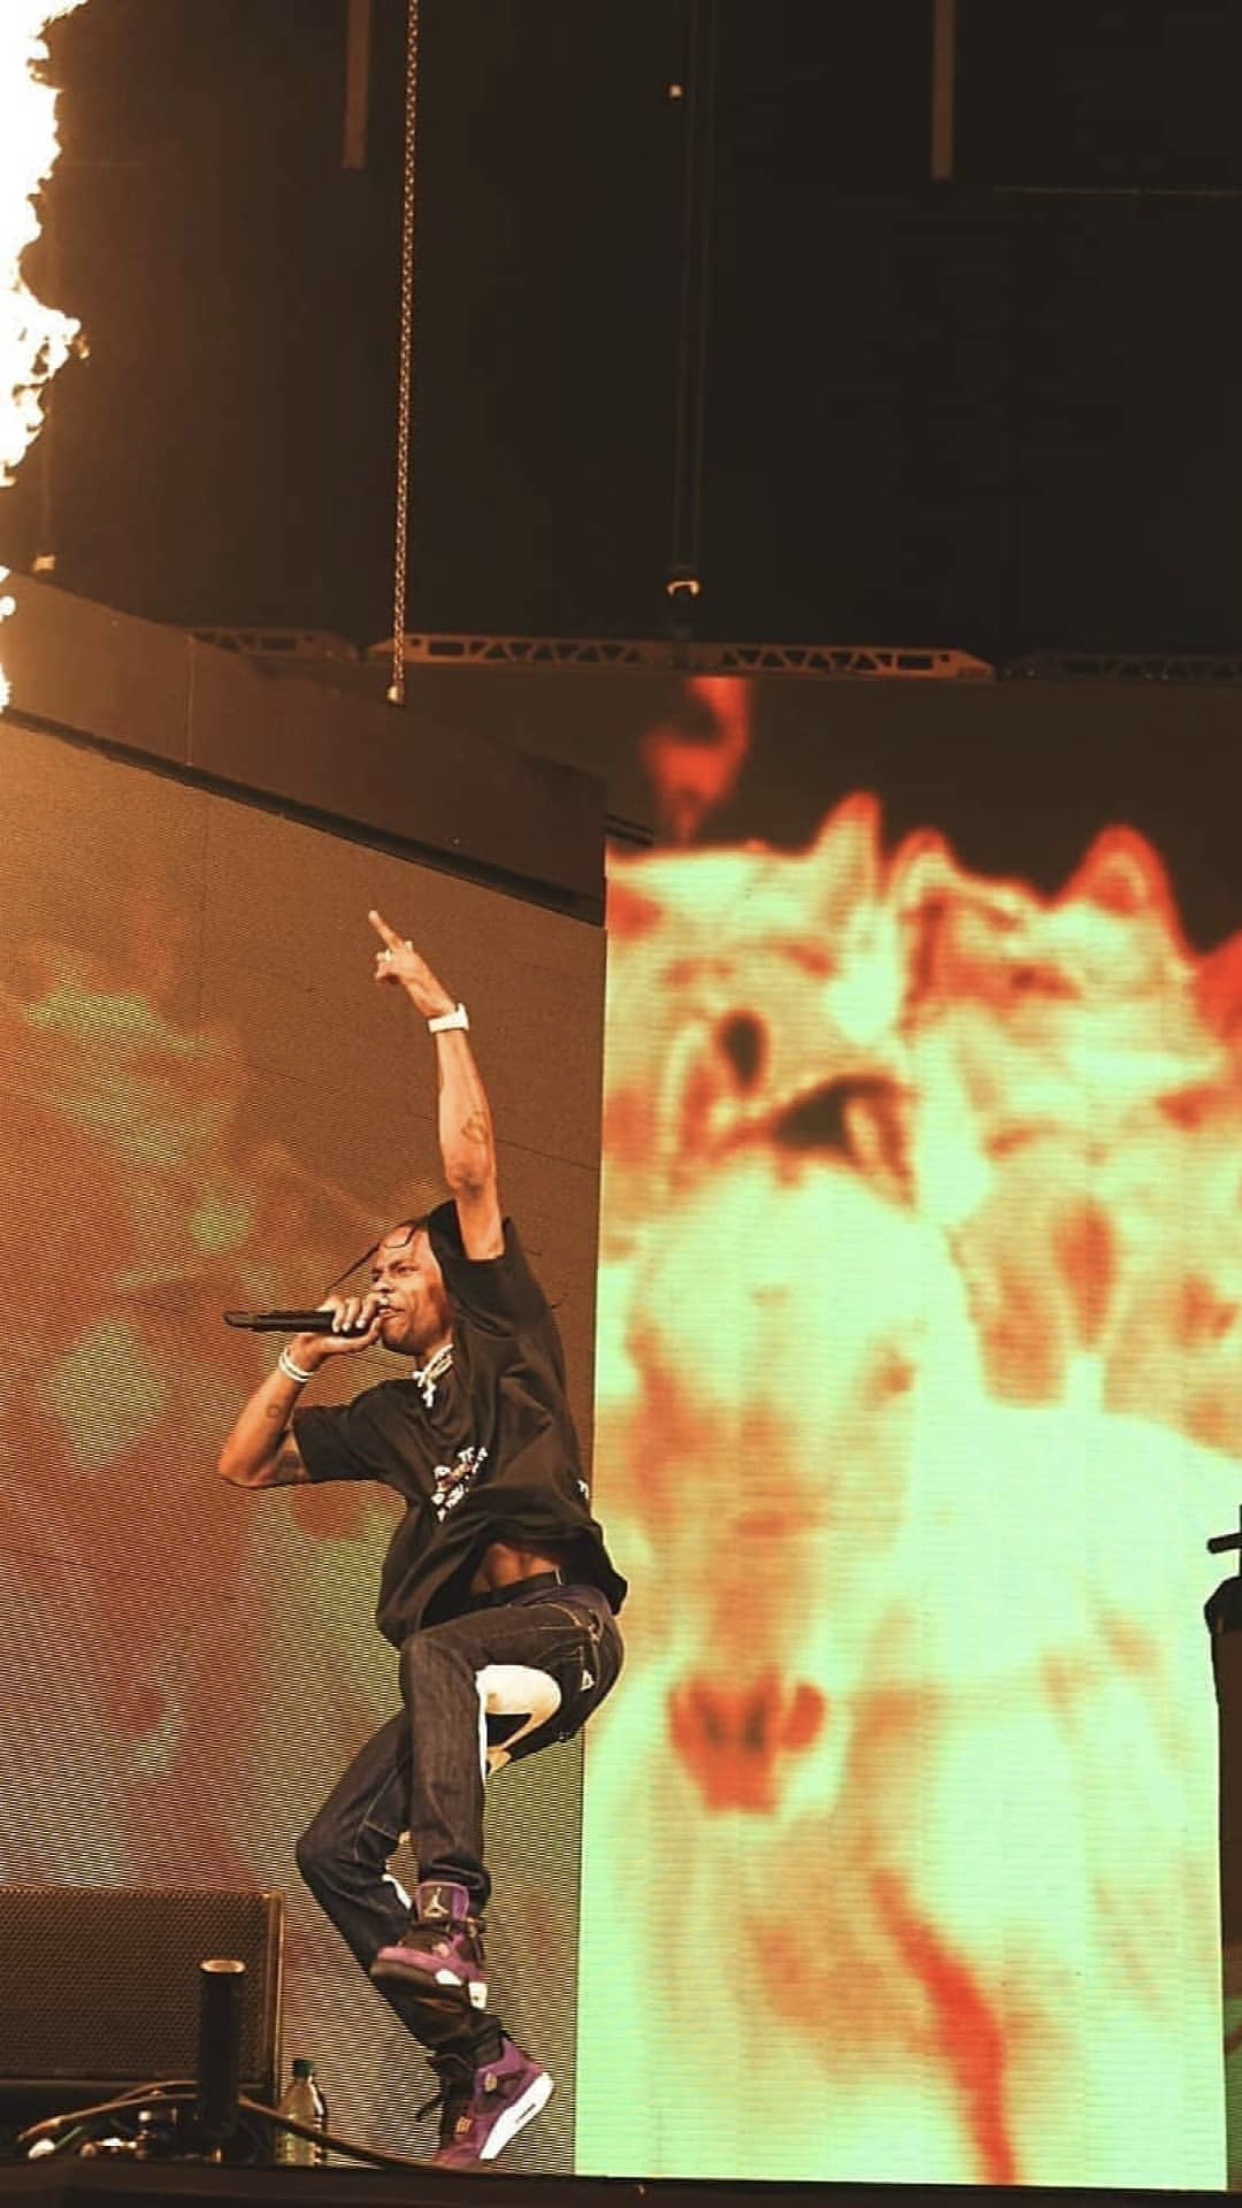 You Love What You See For More Popping Pins Like This Follow Me Ayeefrida New Pins Every Singl Travis Scott Wallpapers Travis Scott Concert Travis Scott